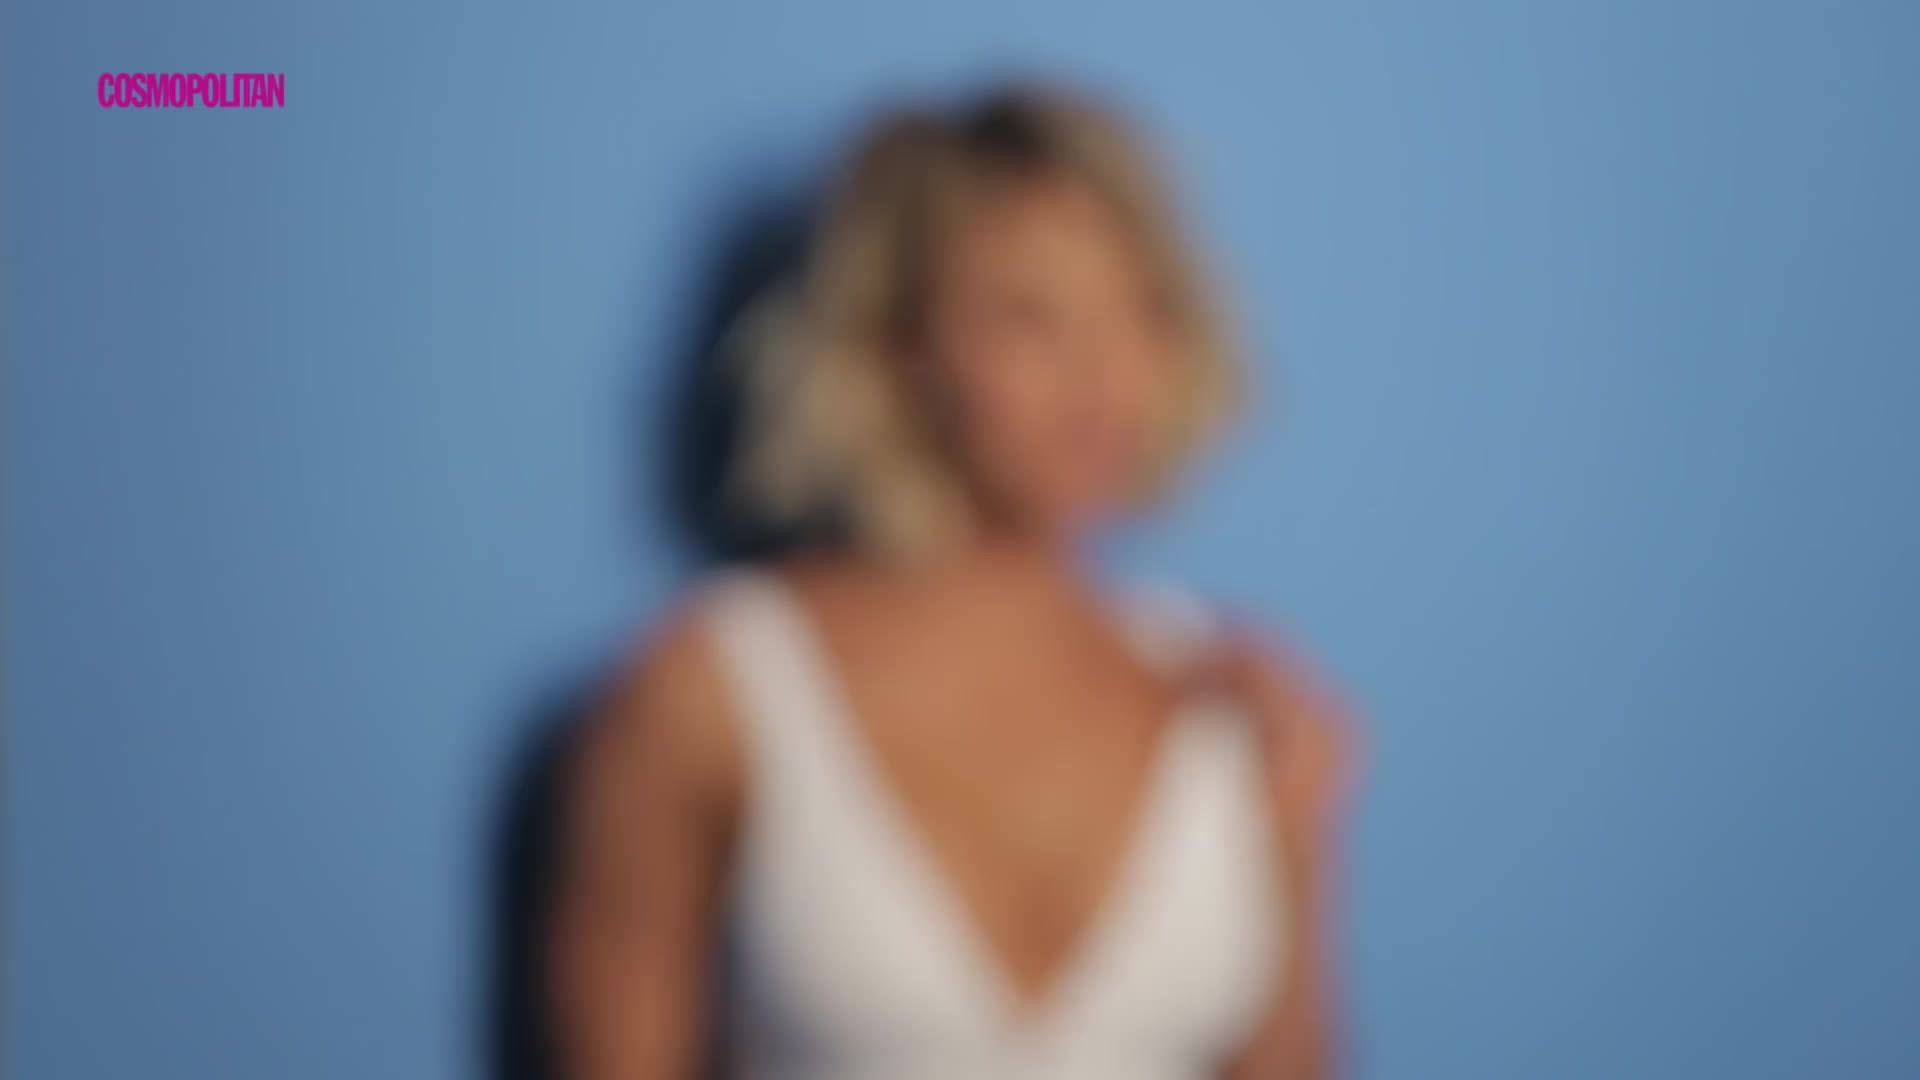 Kaley Cuoco Cosmopolitan Photo Shoot Video